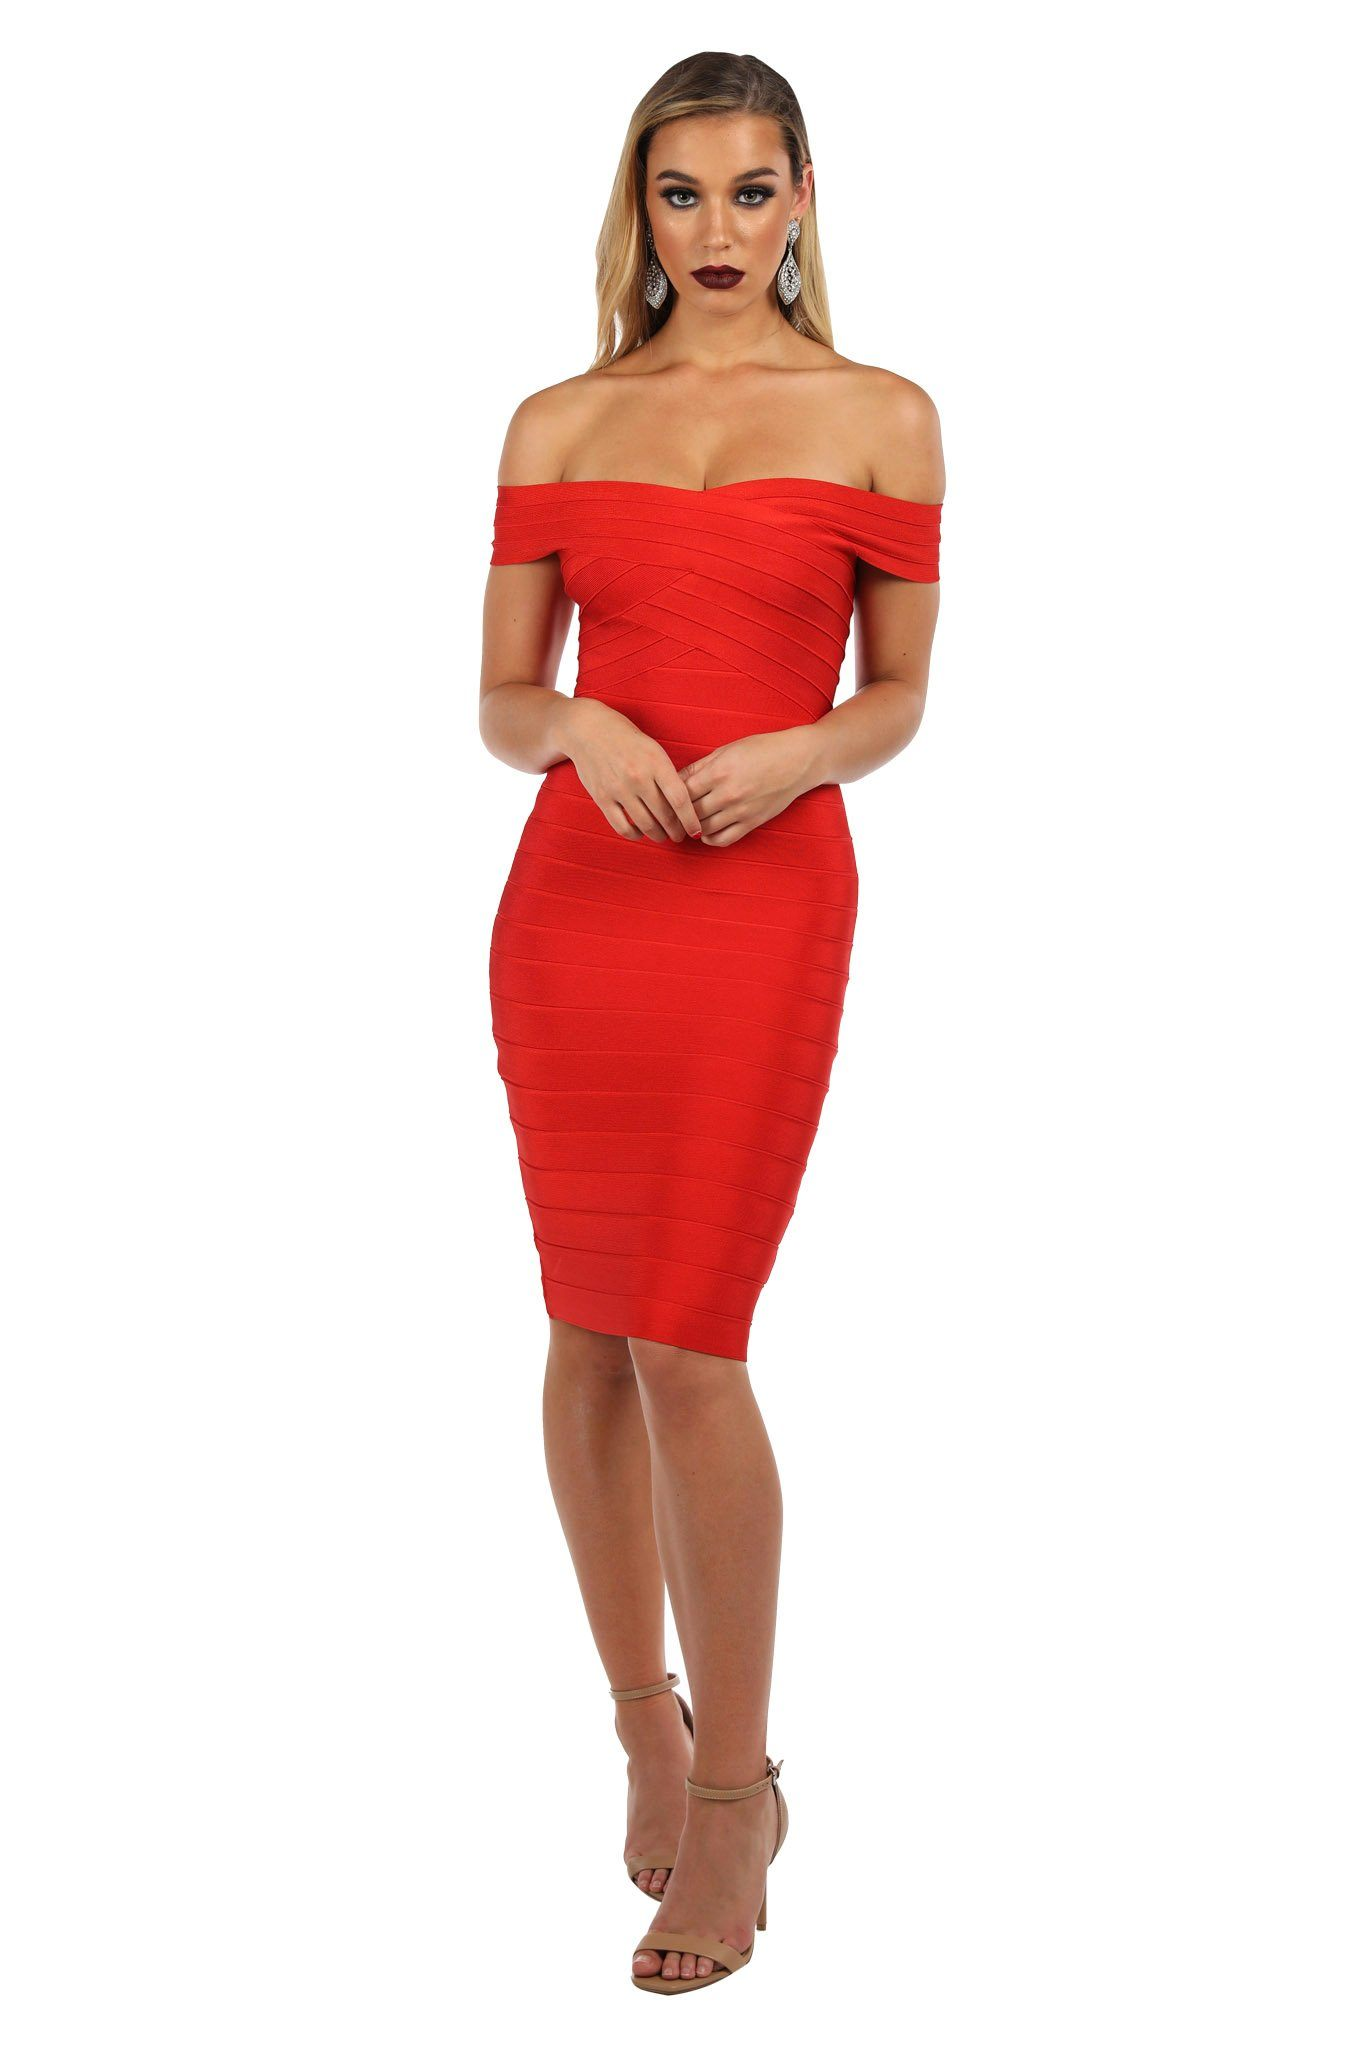 Red fitted bandage dress in knee length featuring strapless off the shoulder design with cap sleeves